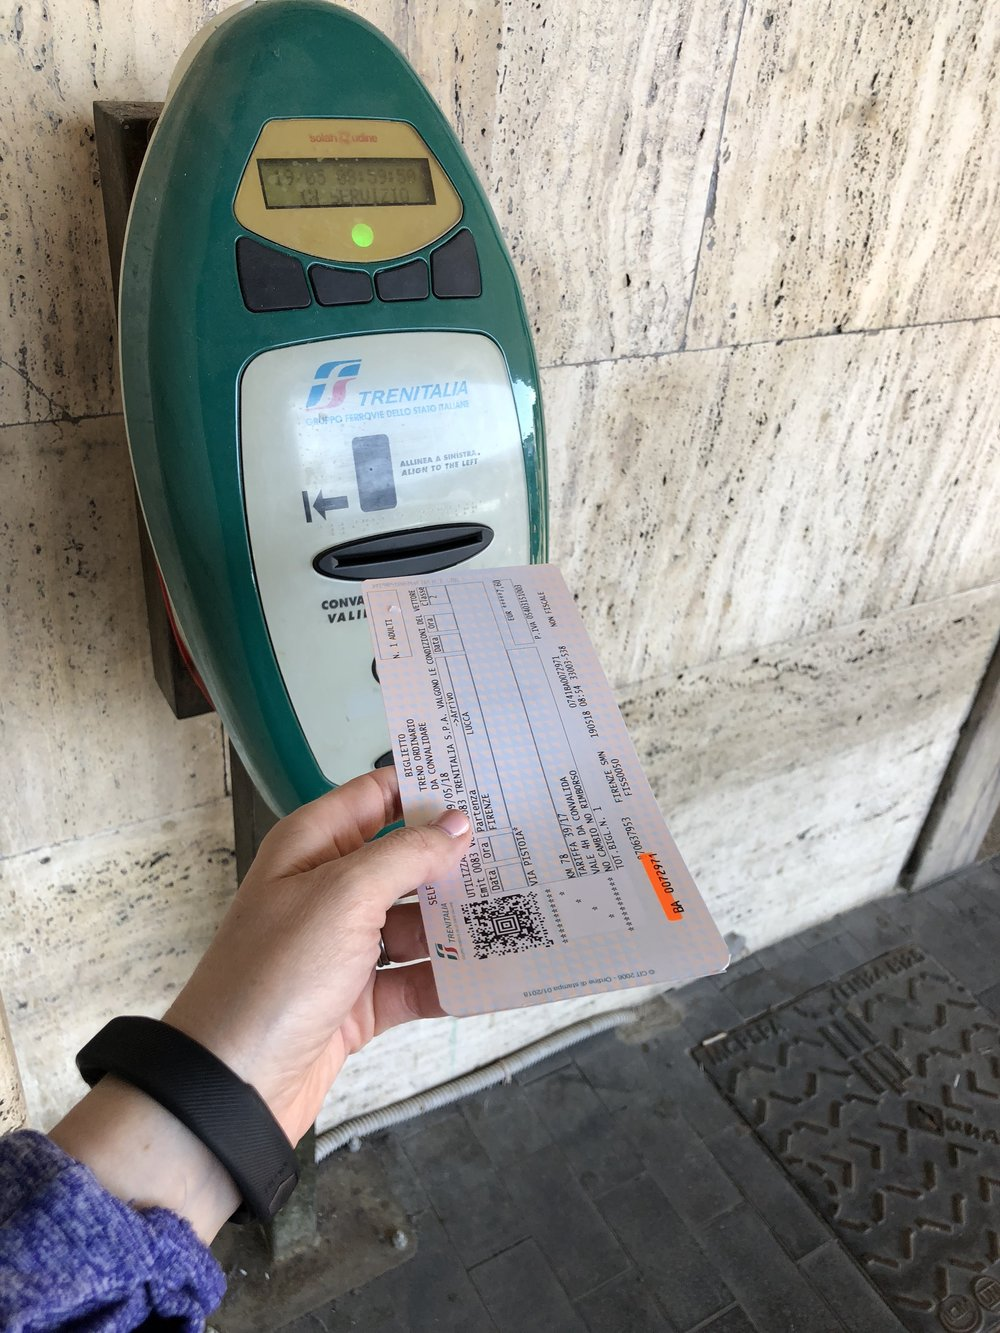 Validating your train ticket in Italy